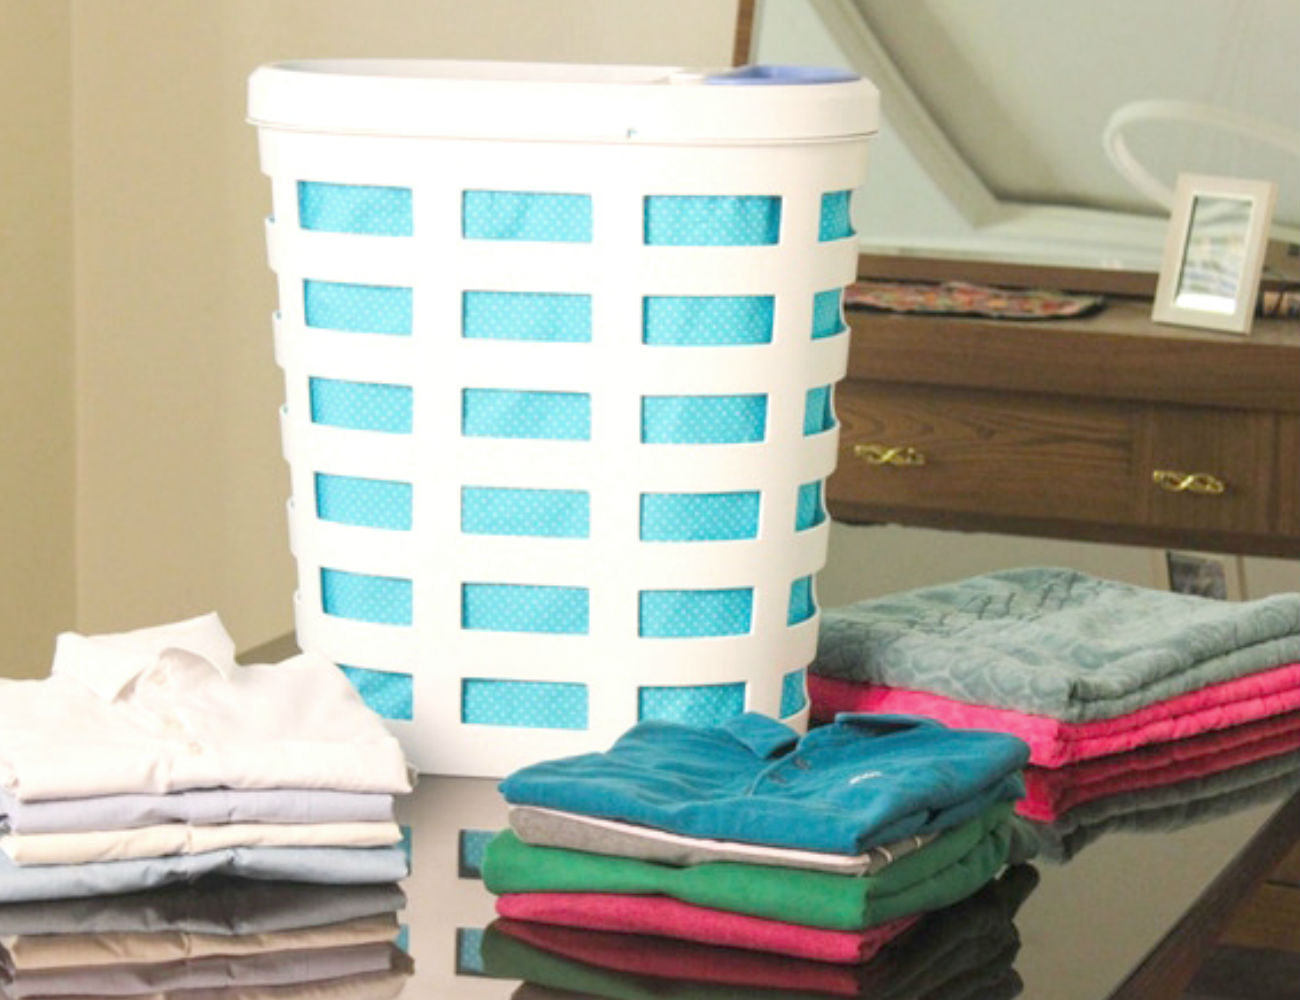 LaunderPal Smart Laundry Basket